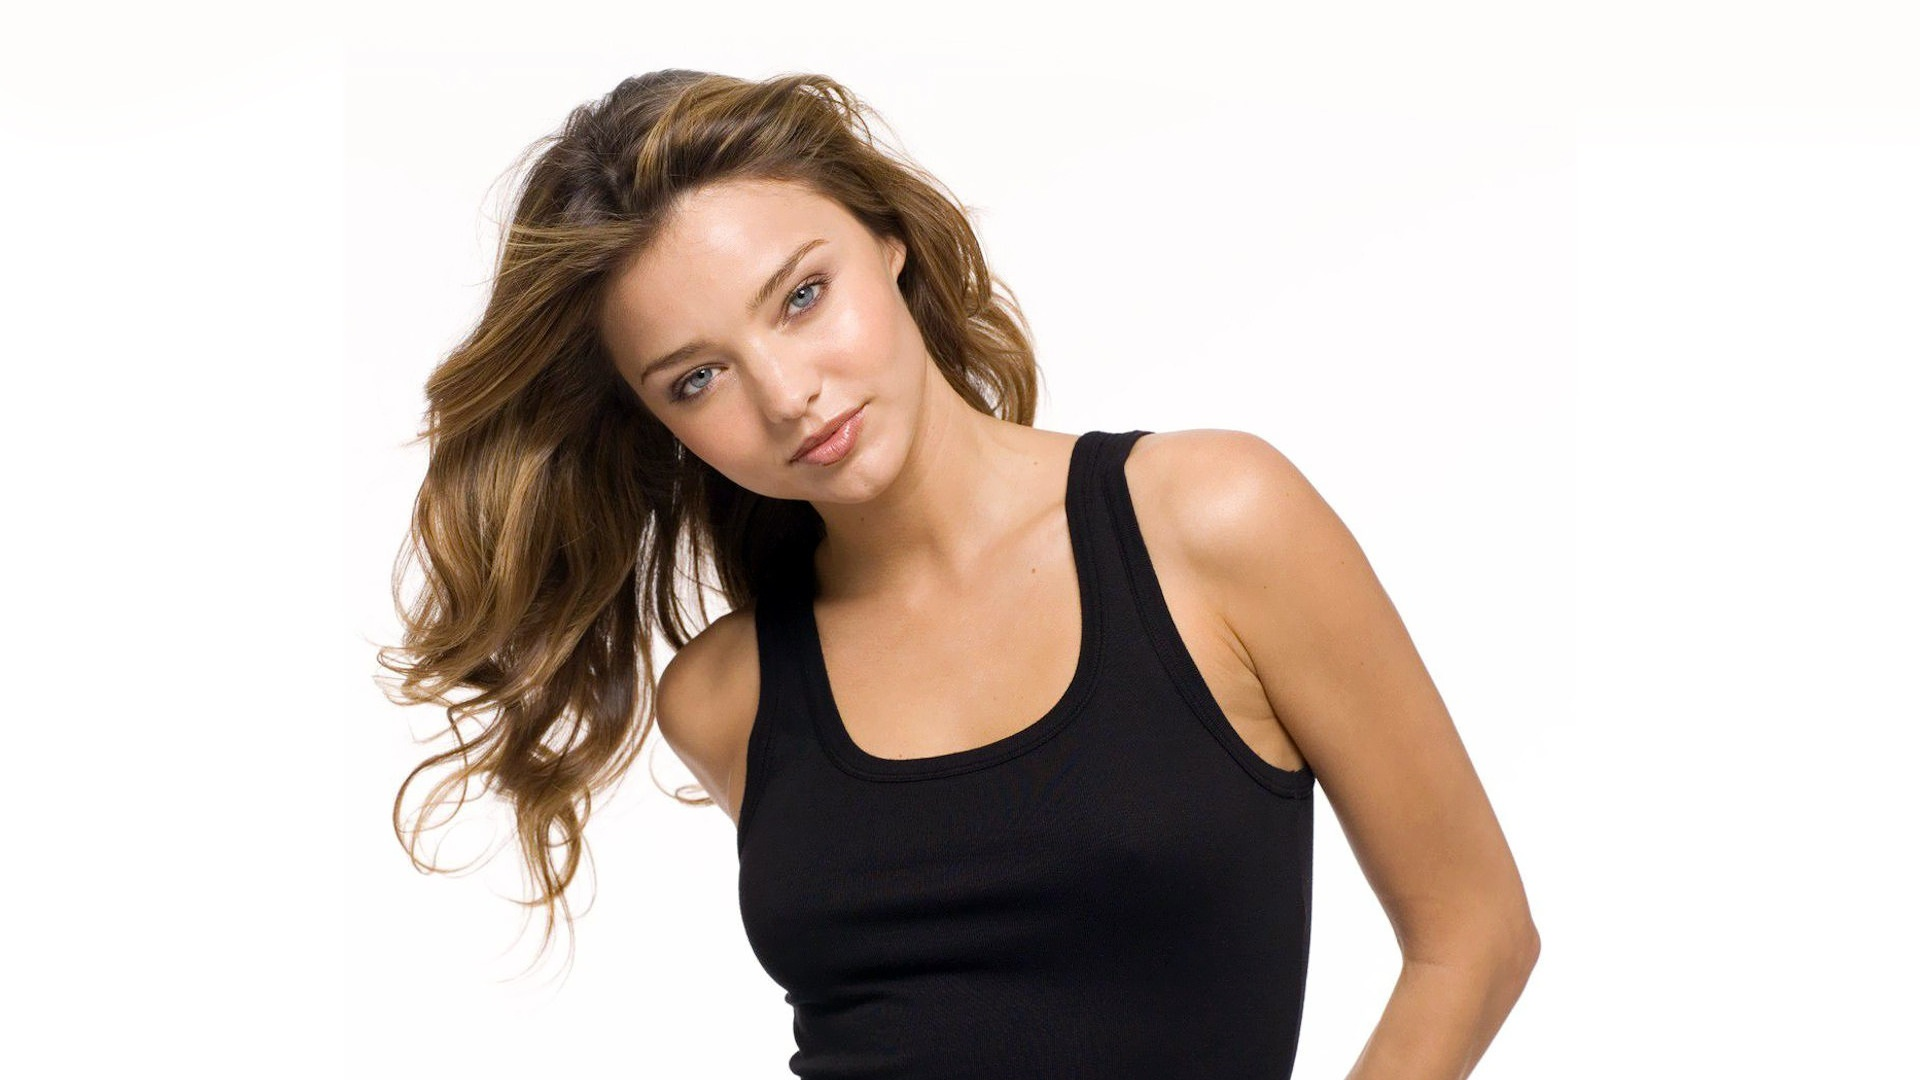 group of celebrity miranda kerr wallpaper